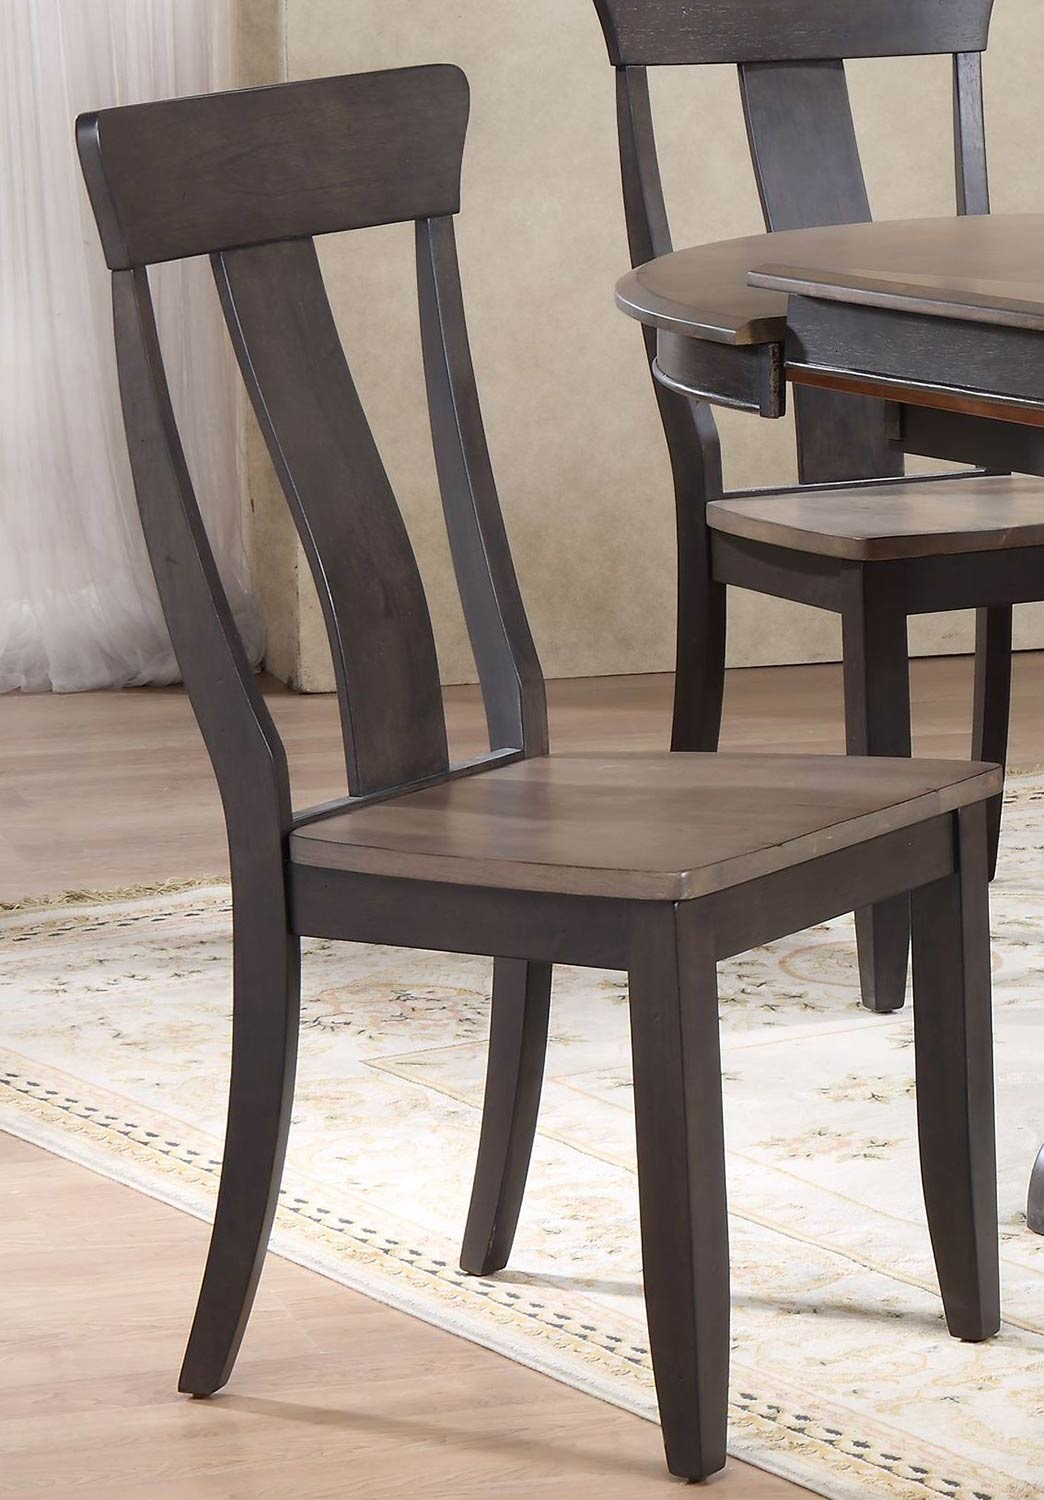 Iconic Furniture Panel Back Dining Chair - Grey Stone/Black Stone